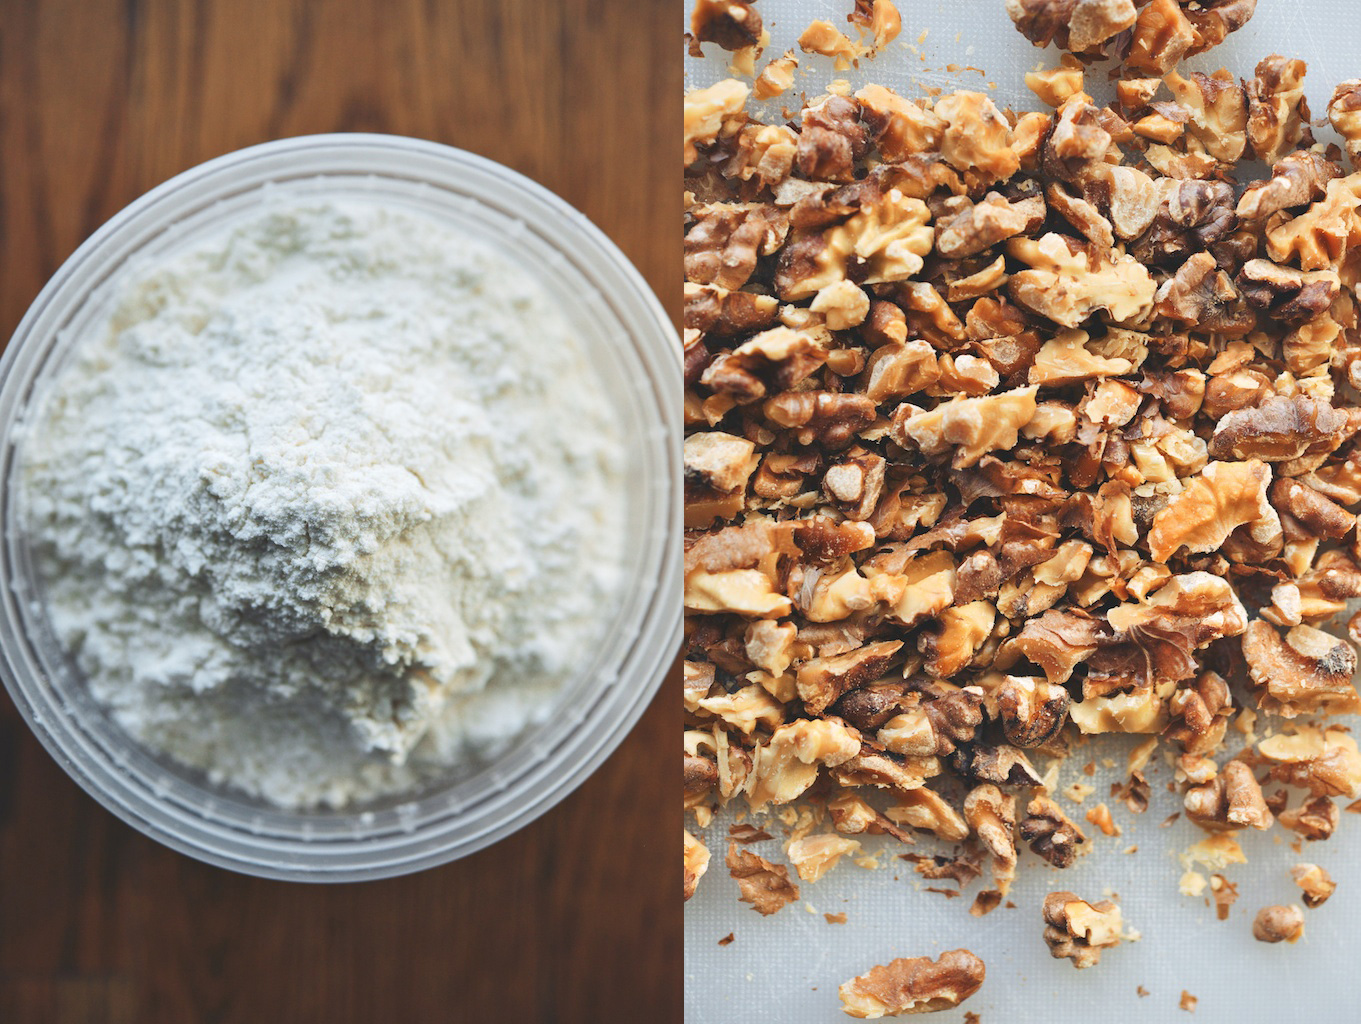 flour and toasted walnuts